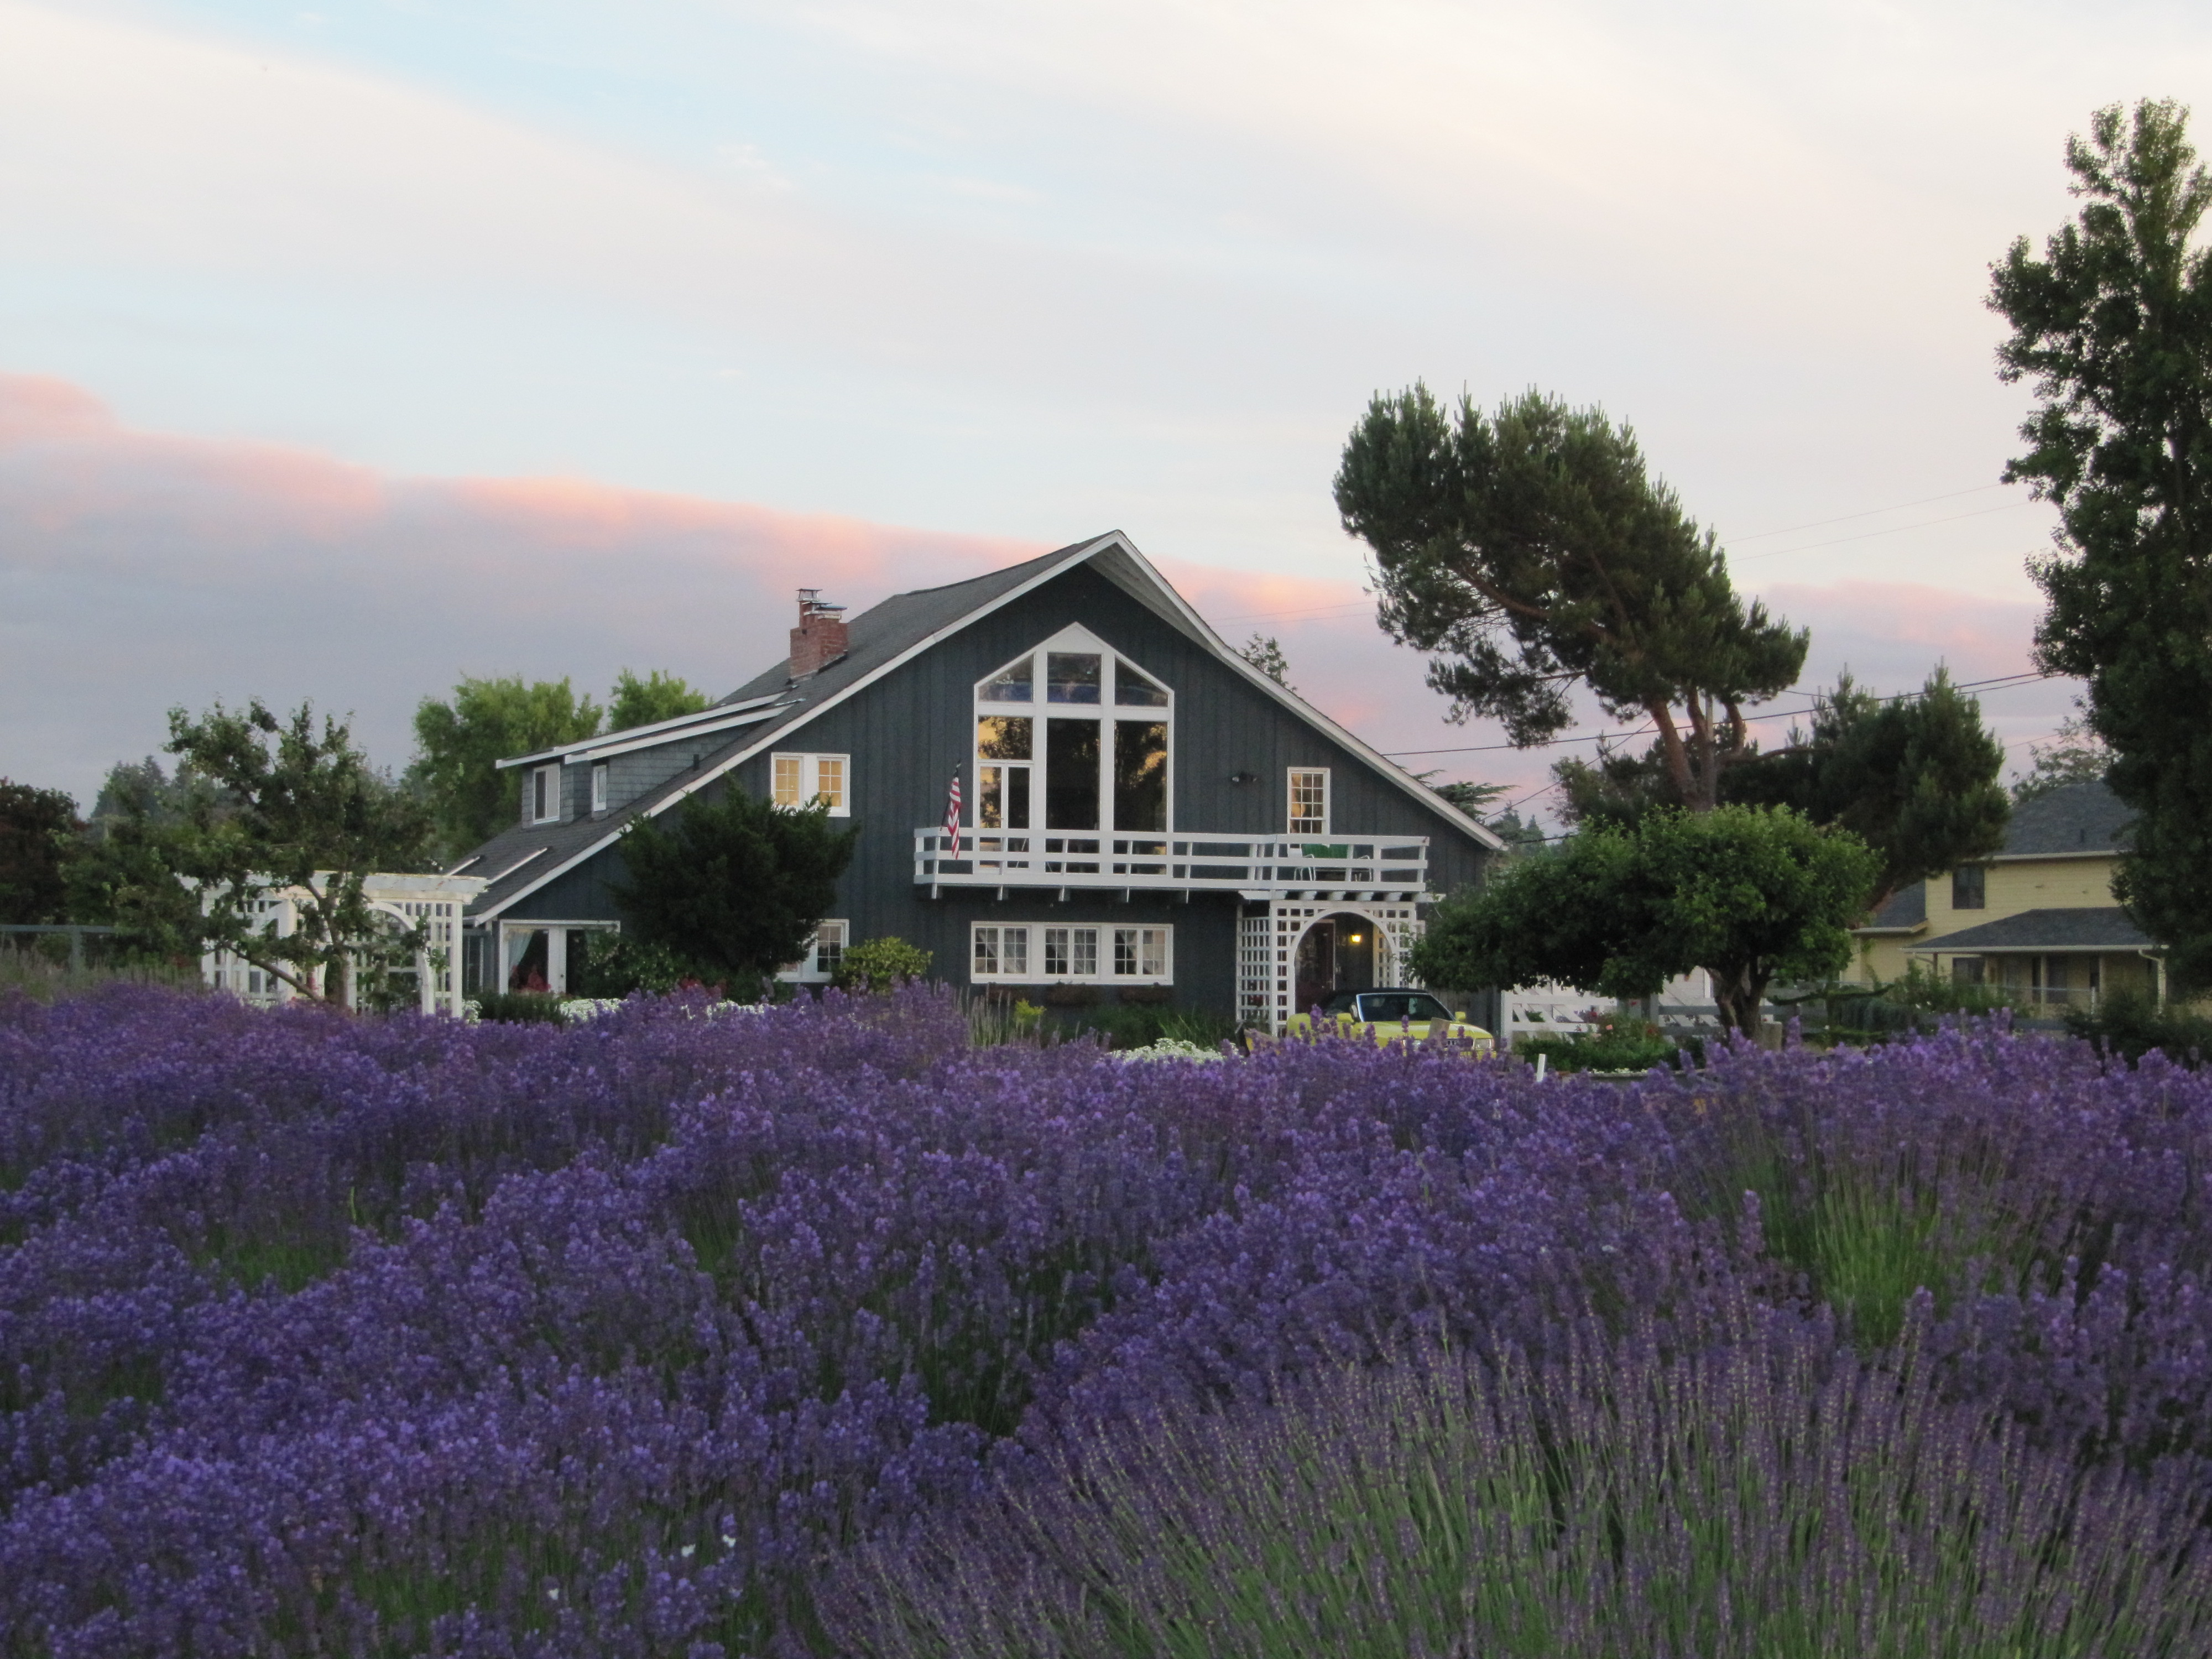 The Dungeness Barn House Bed and Breakfast